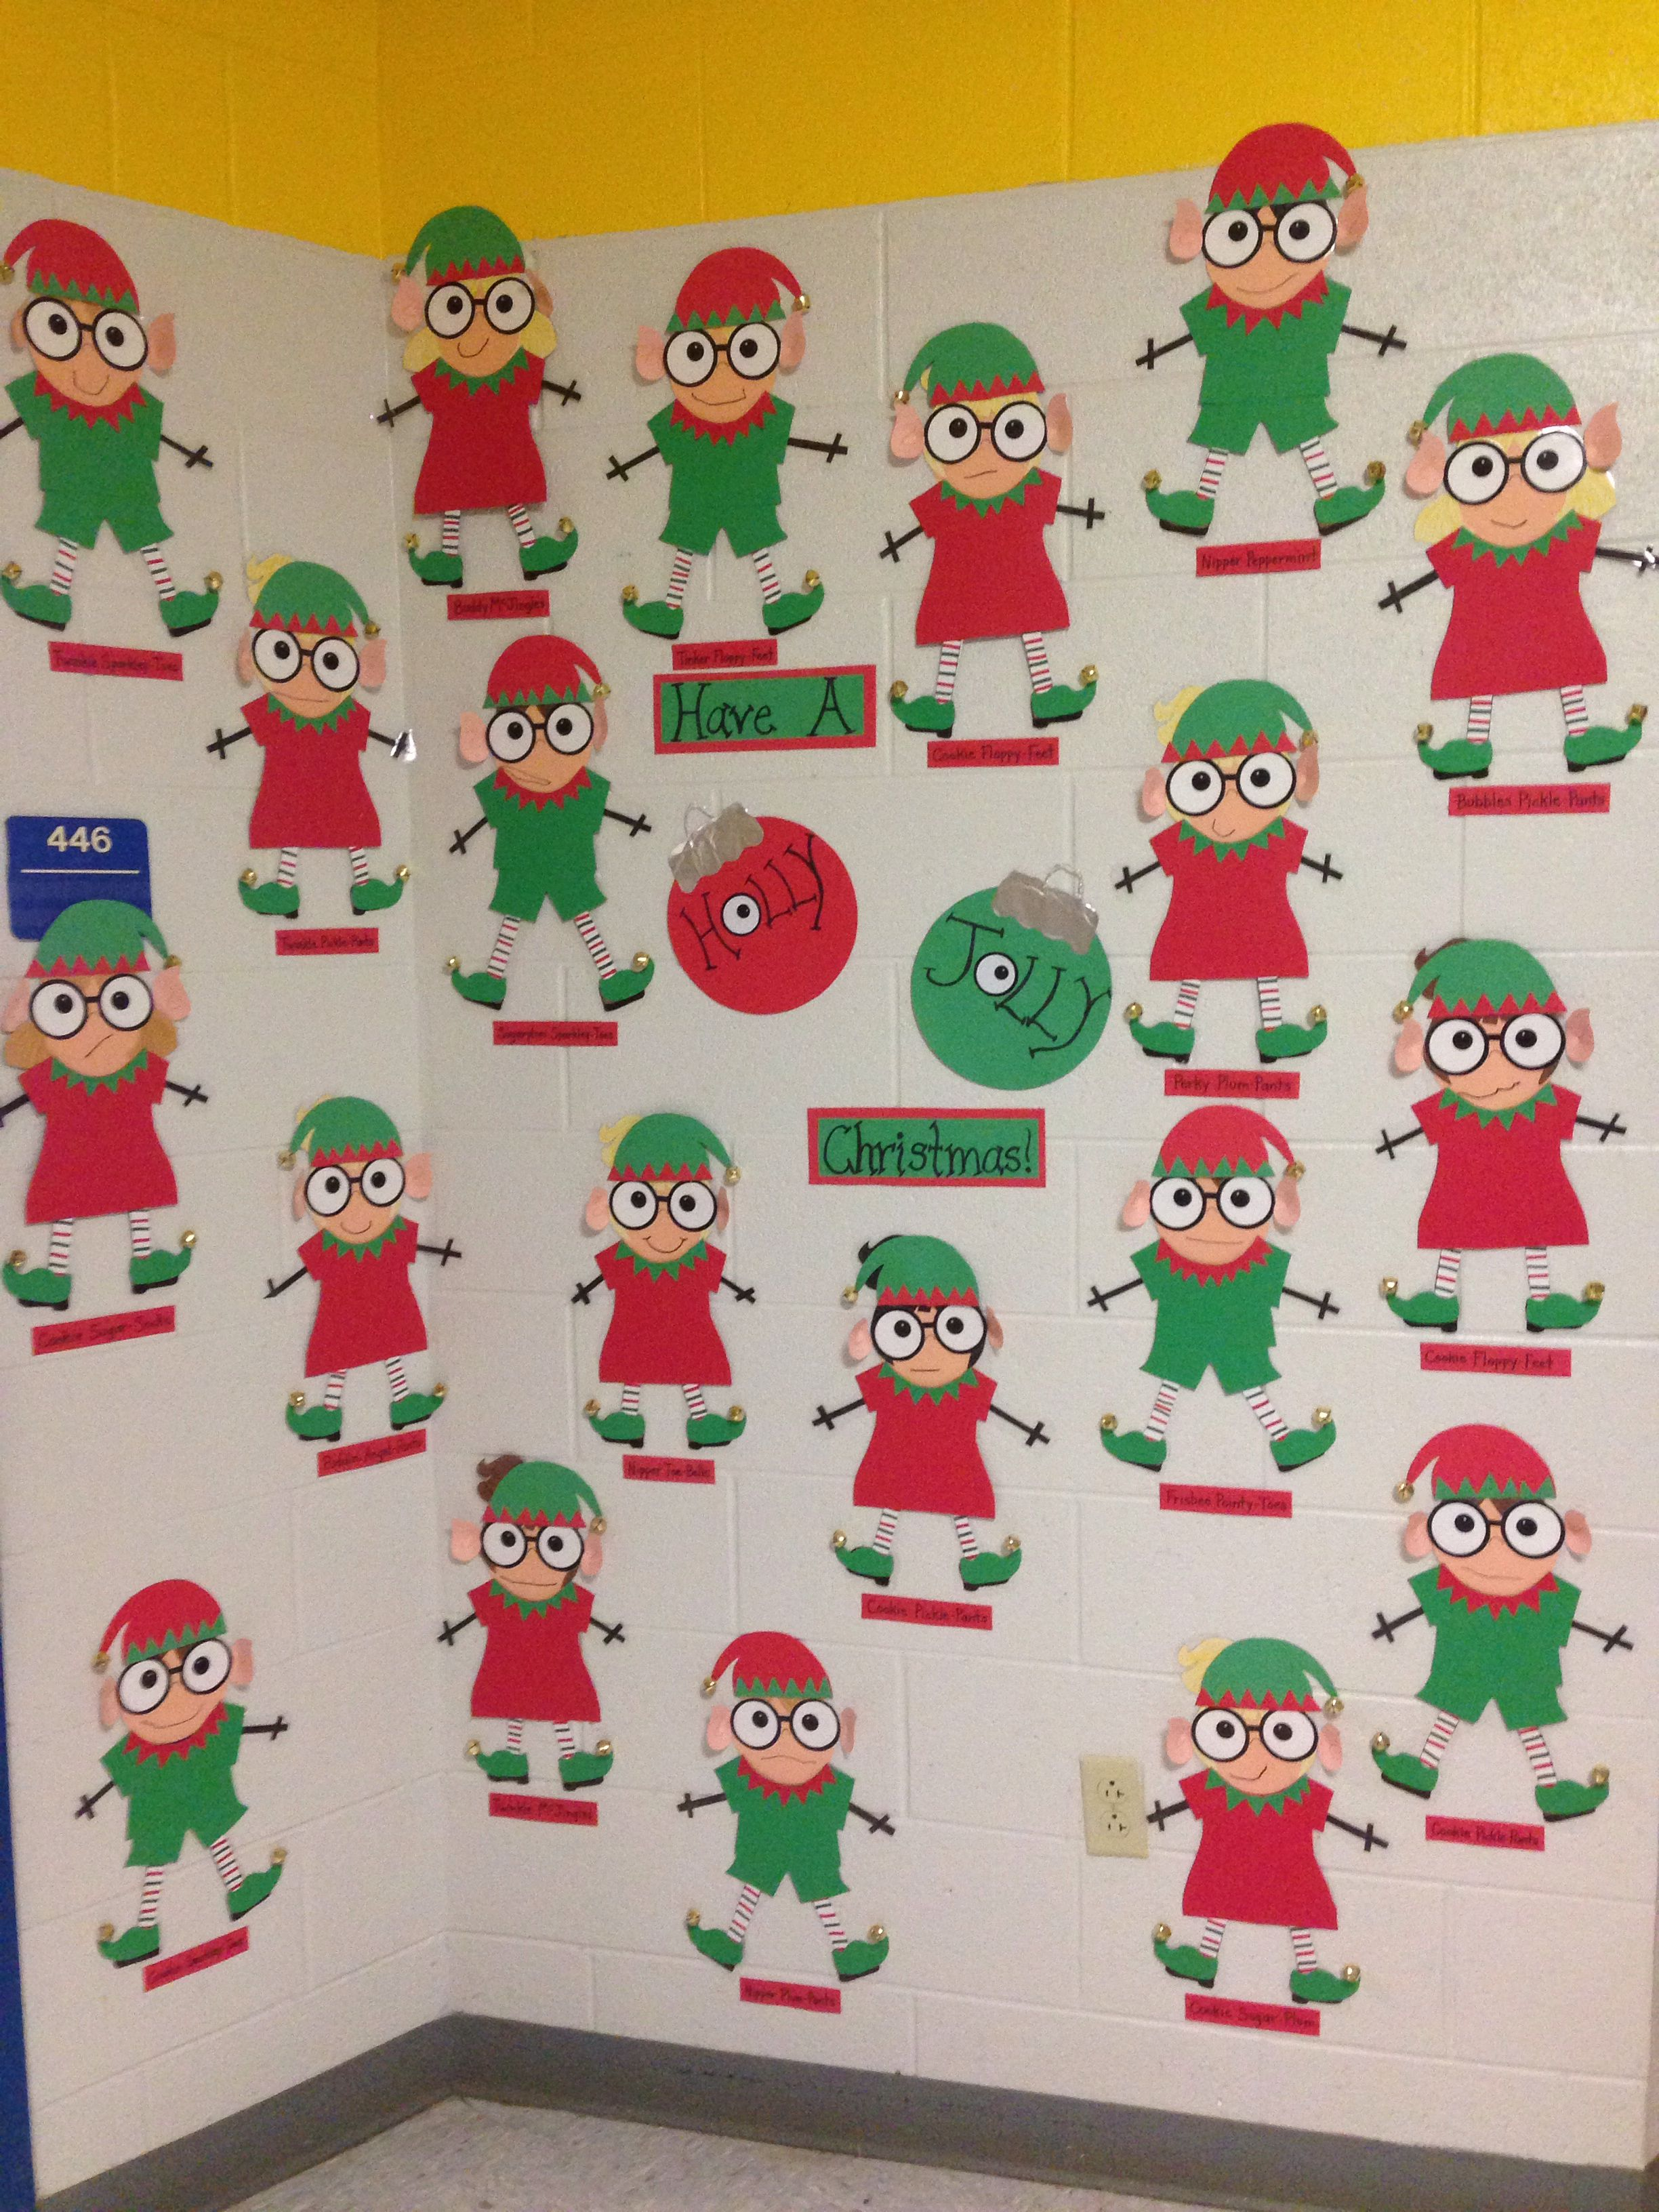 Our Elf People